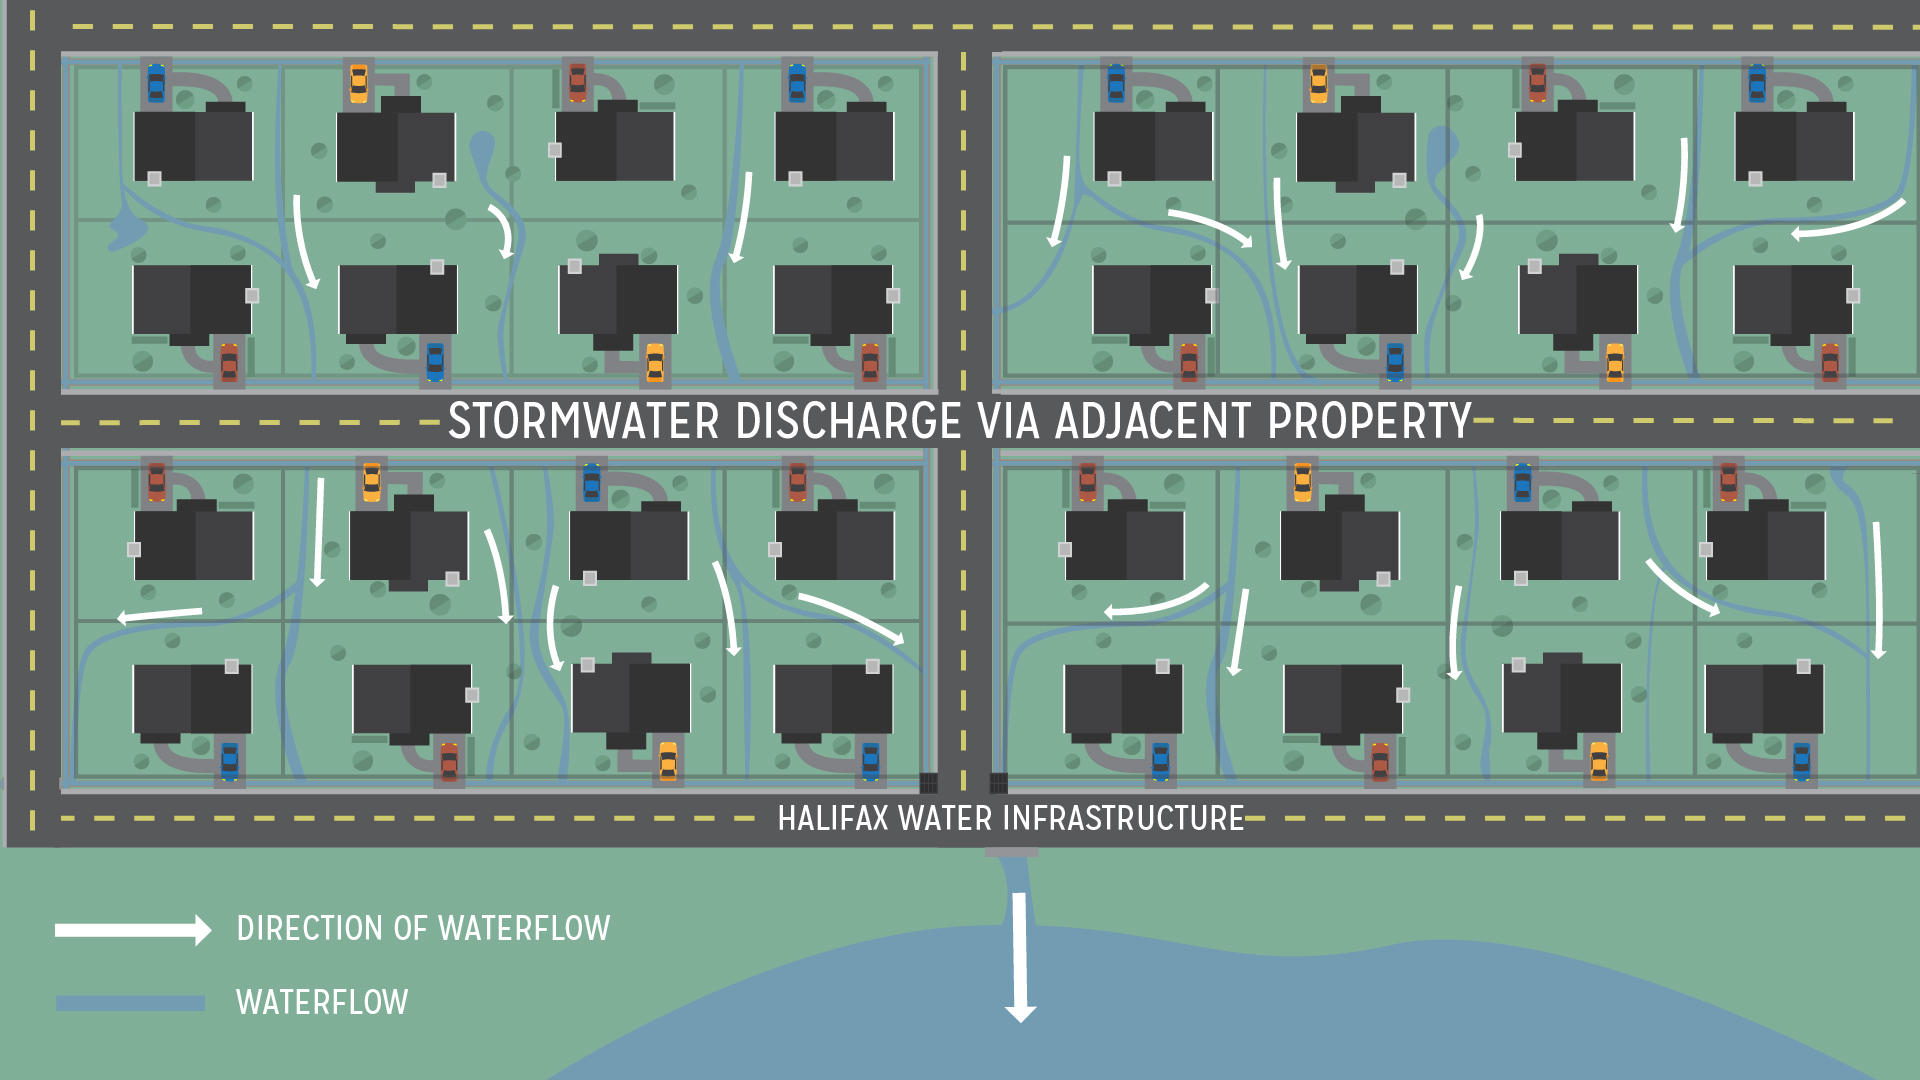 Image showing stormwater discharge via adjacent property